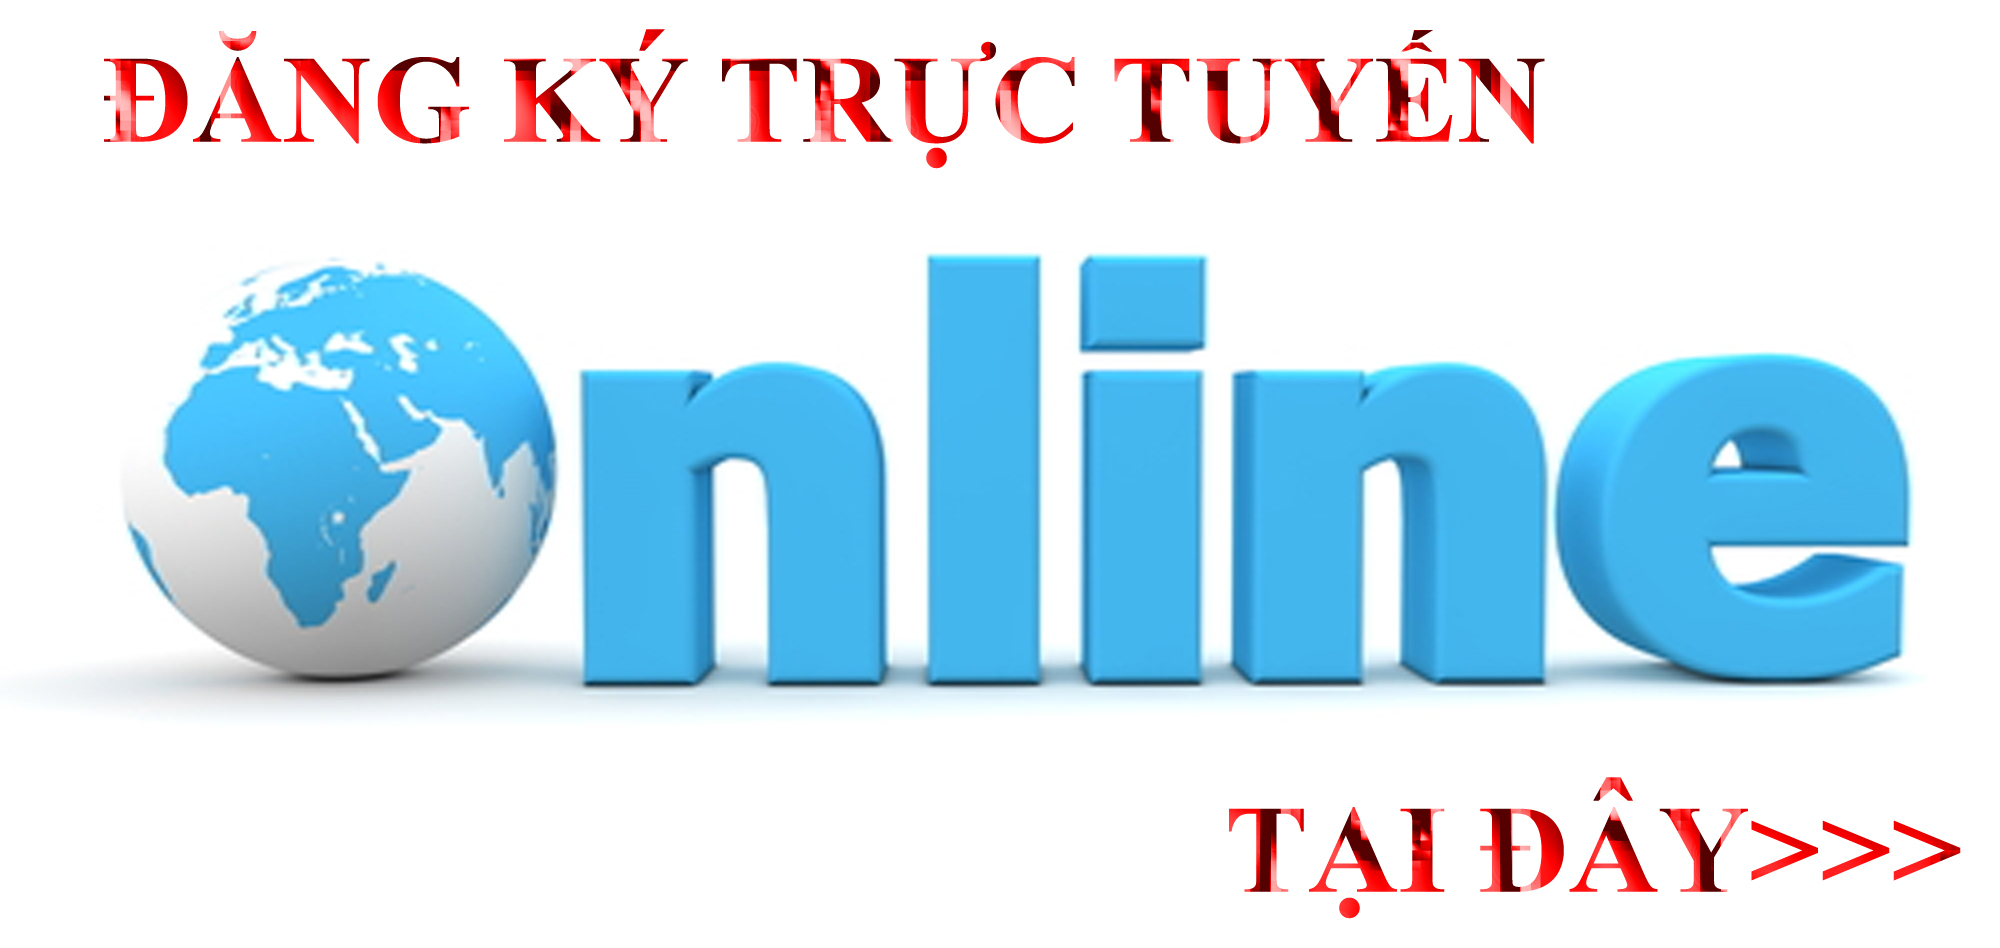 http://thcsdaoduytuhn.vn/dang-ky-xet-tuyen-lop-6